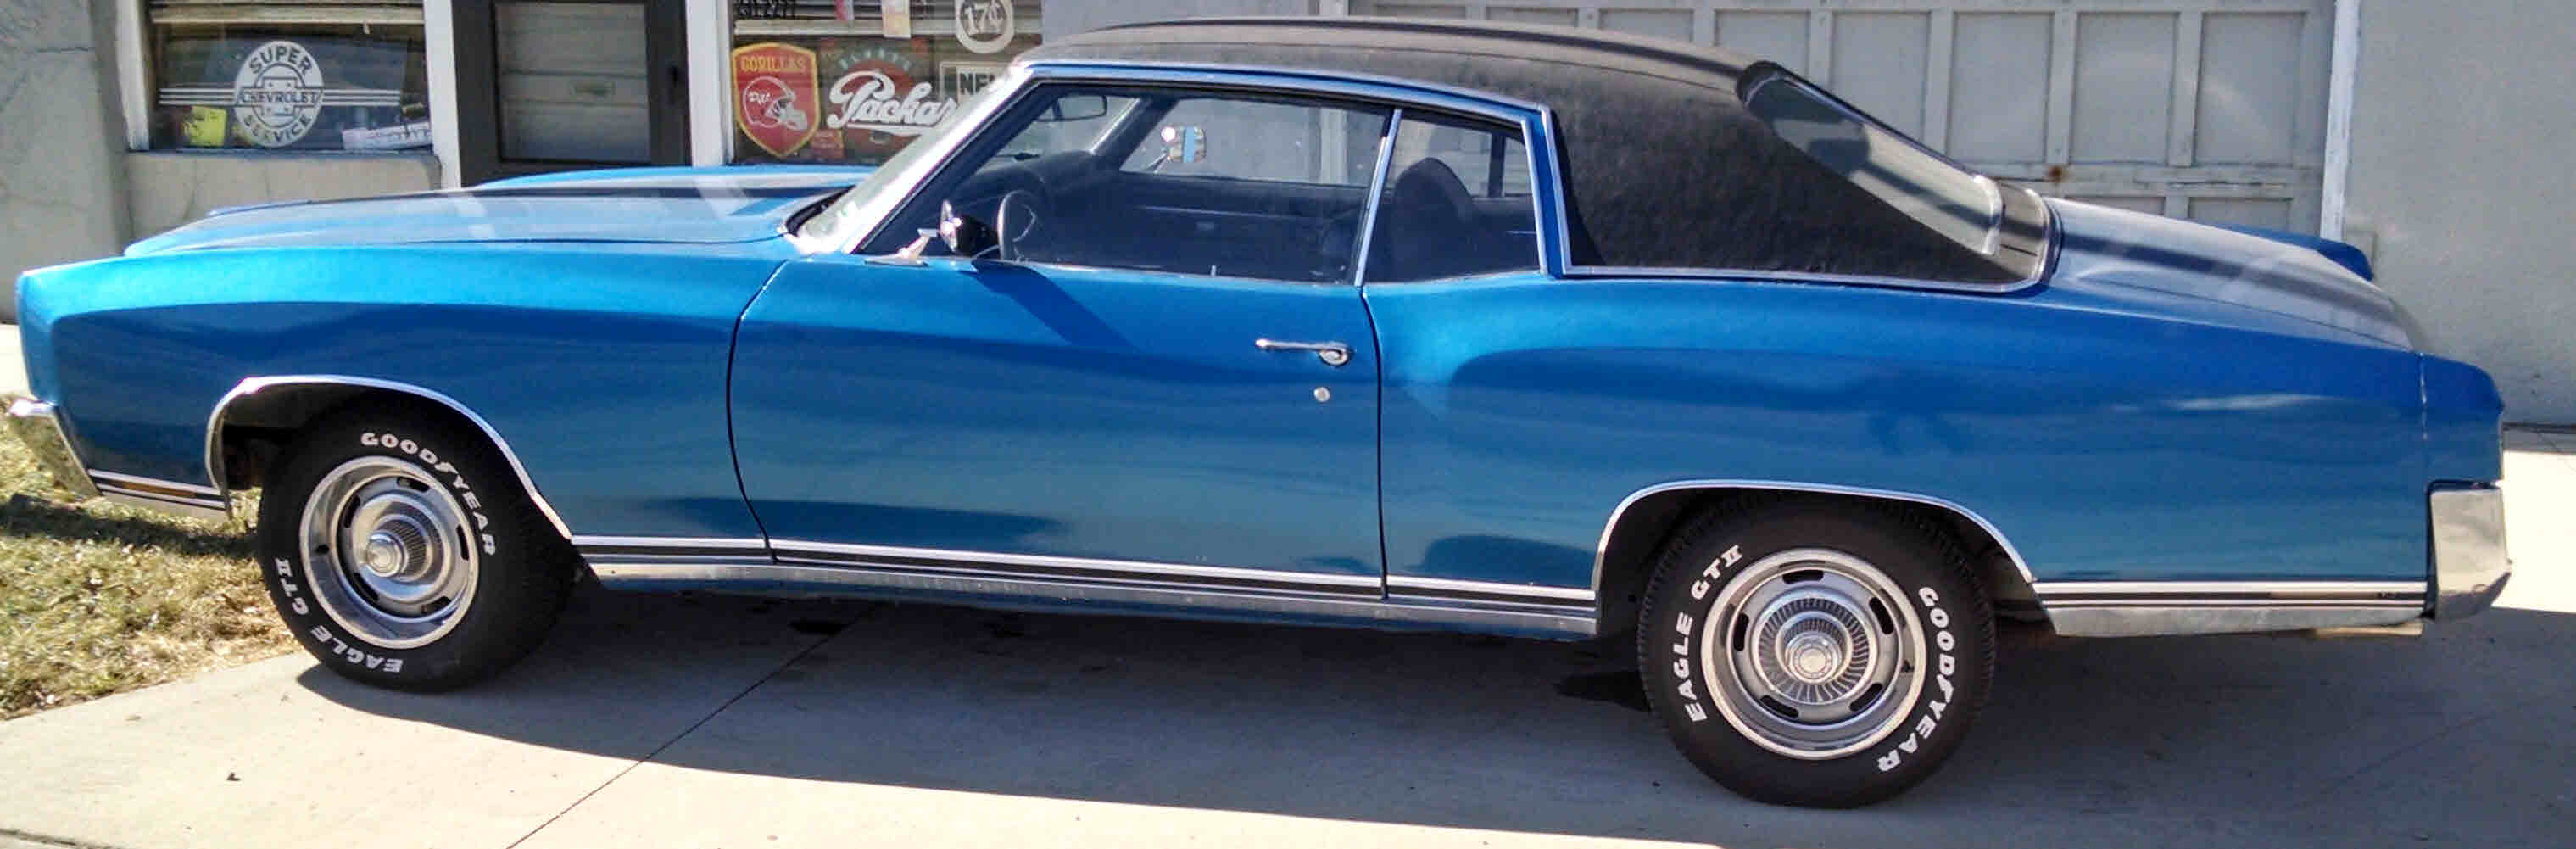 1970 Chevy Monte Carlo Sold Bright Blue Black Vinyl